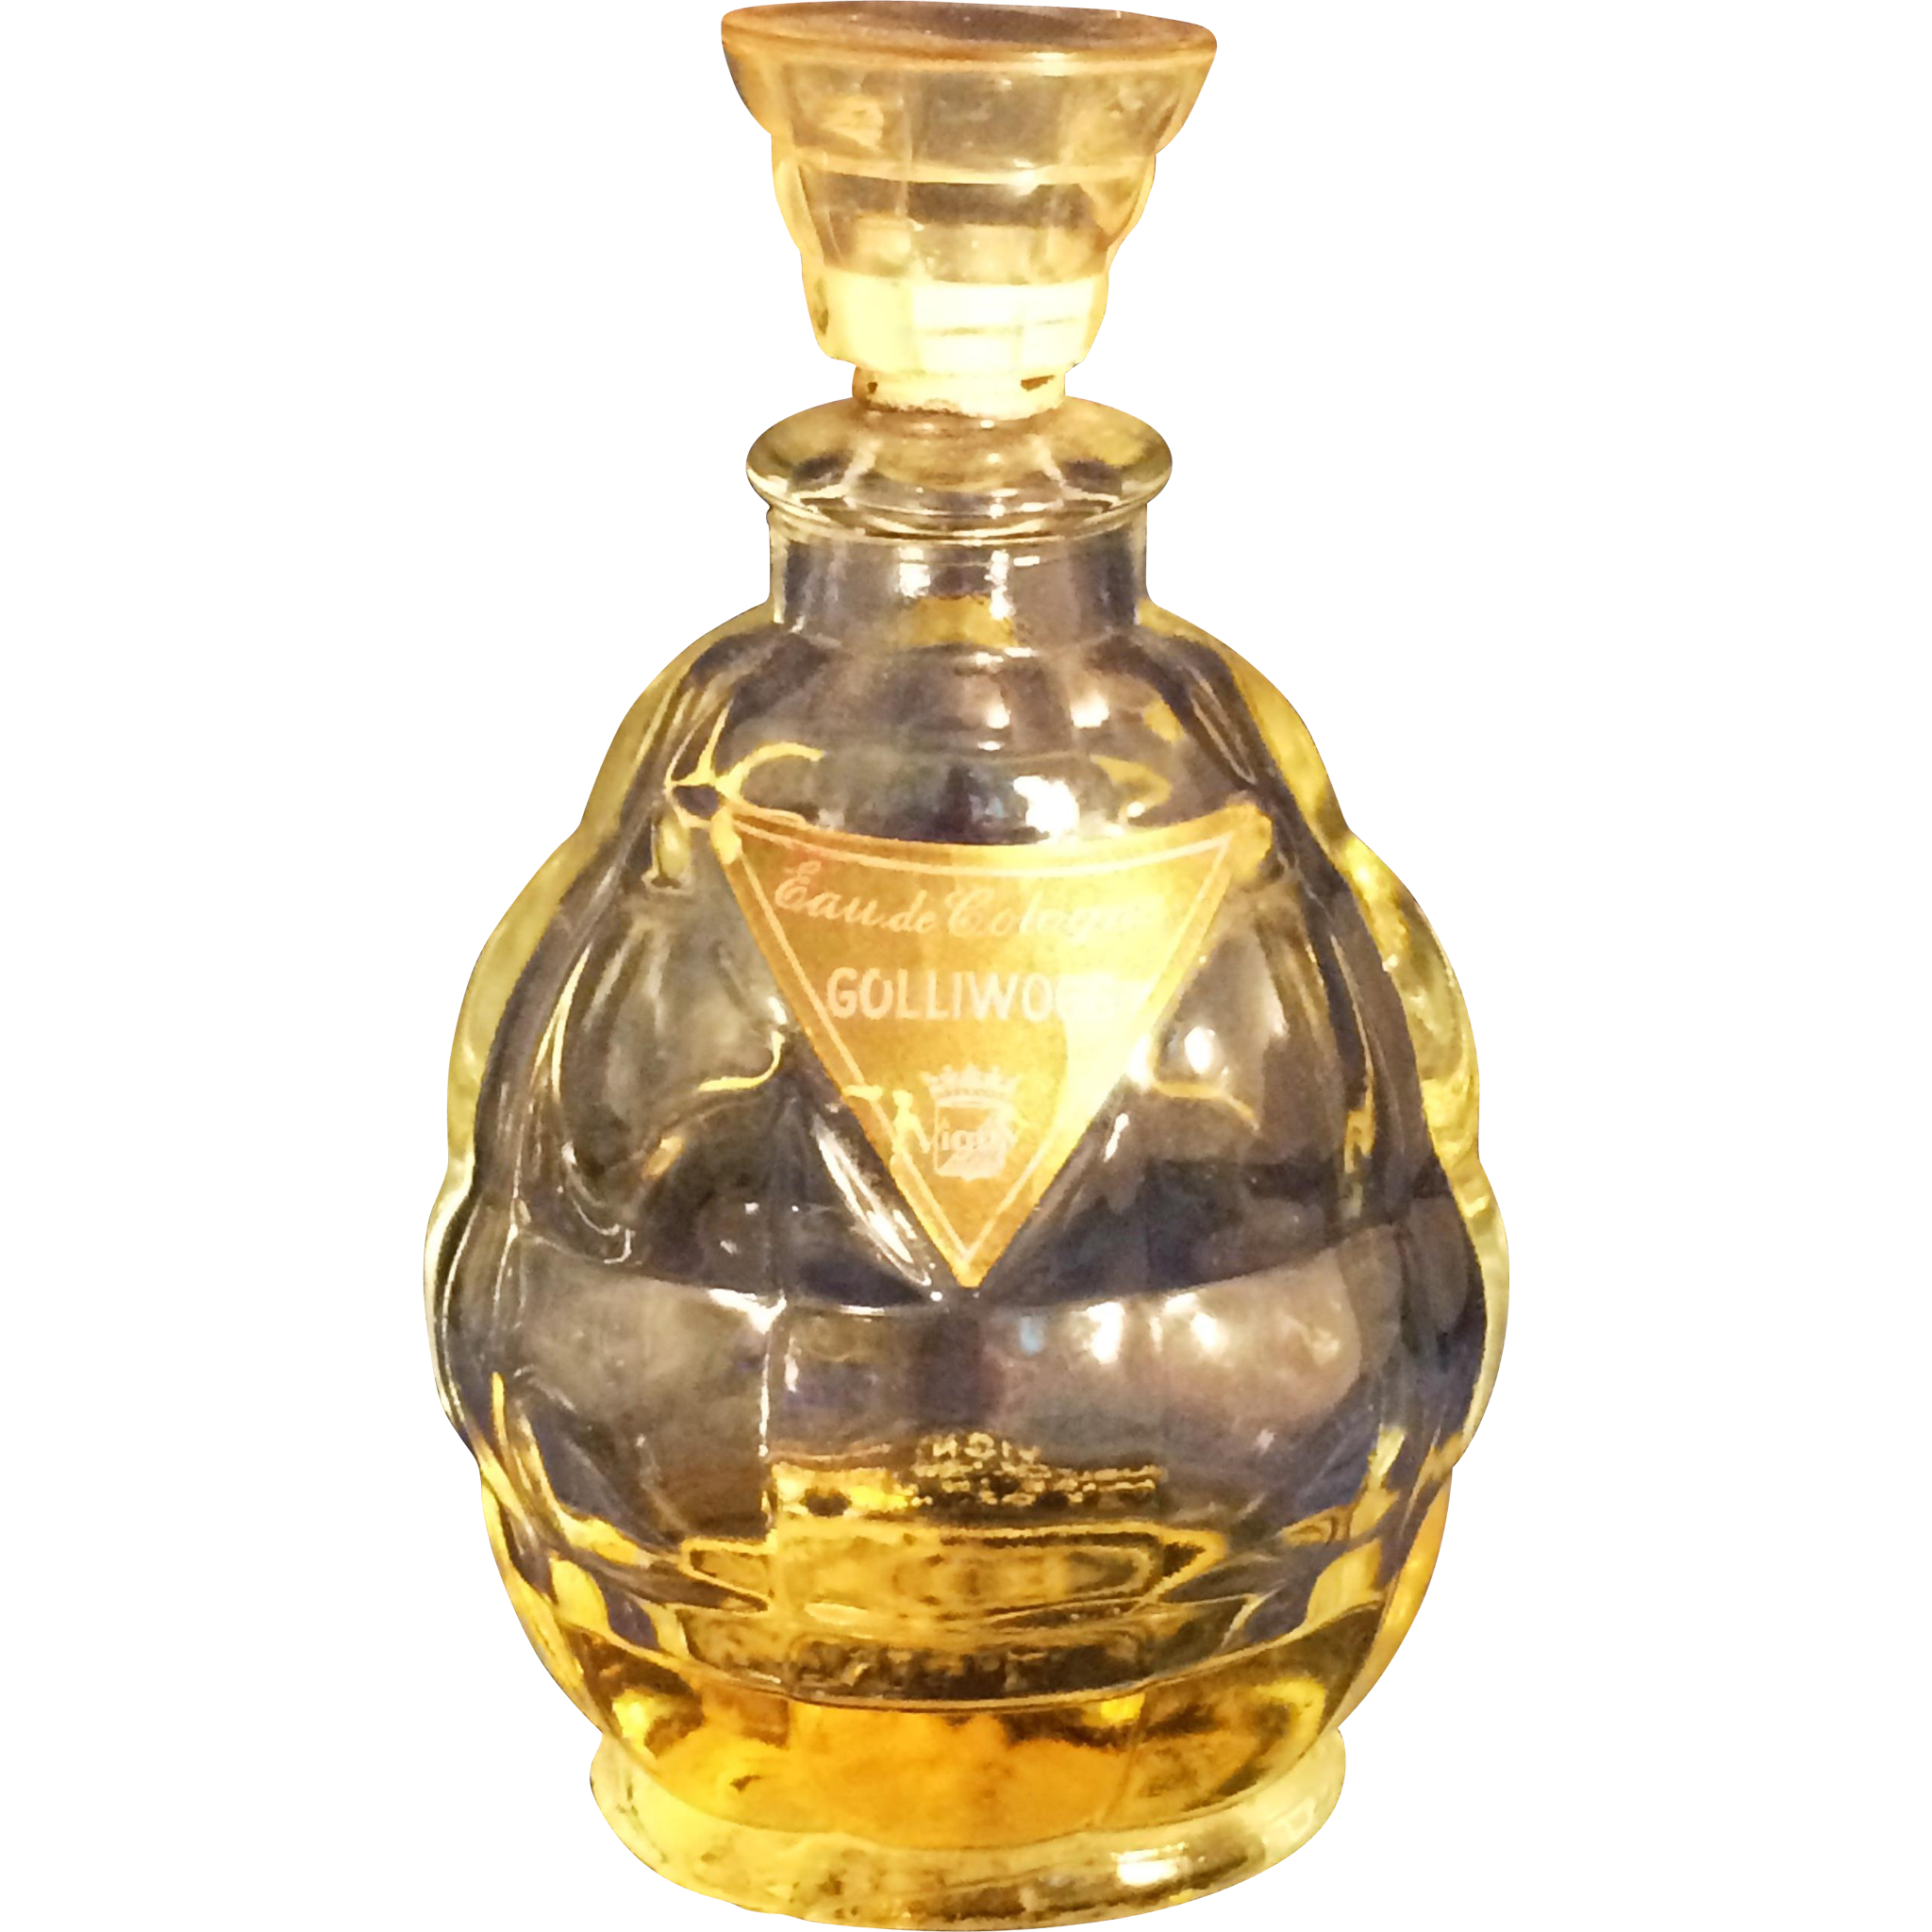 Vigny Golliwog  Perfume quilted glass 2 oz  bottle